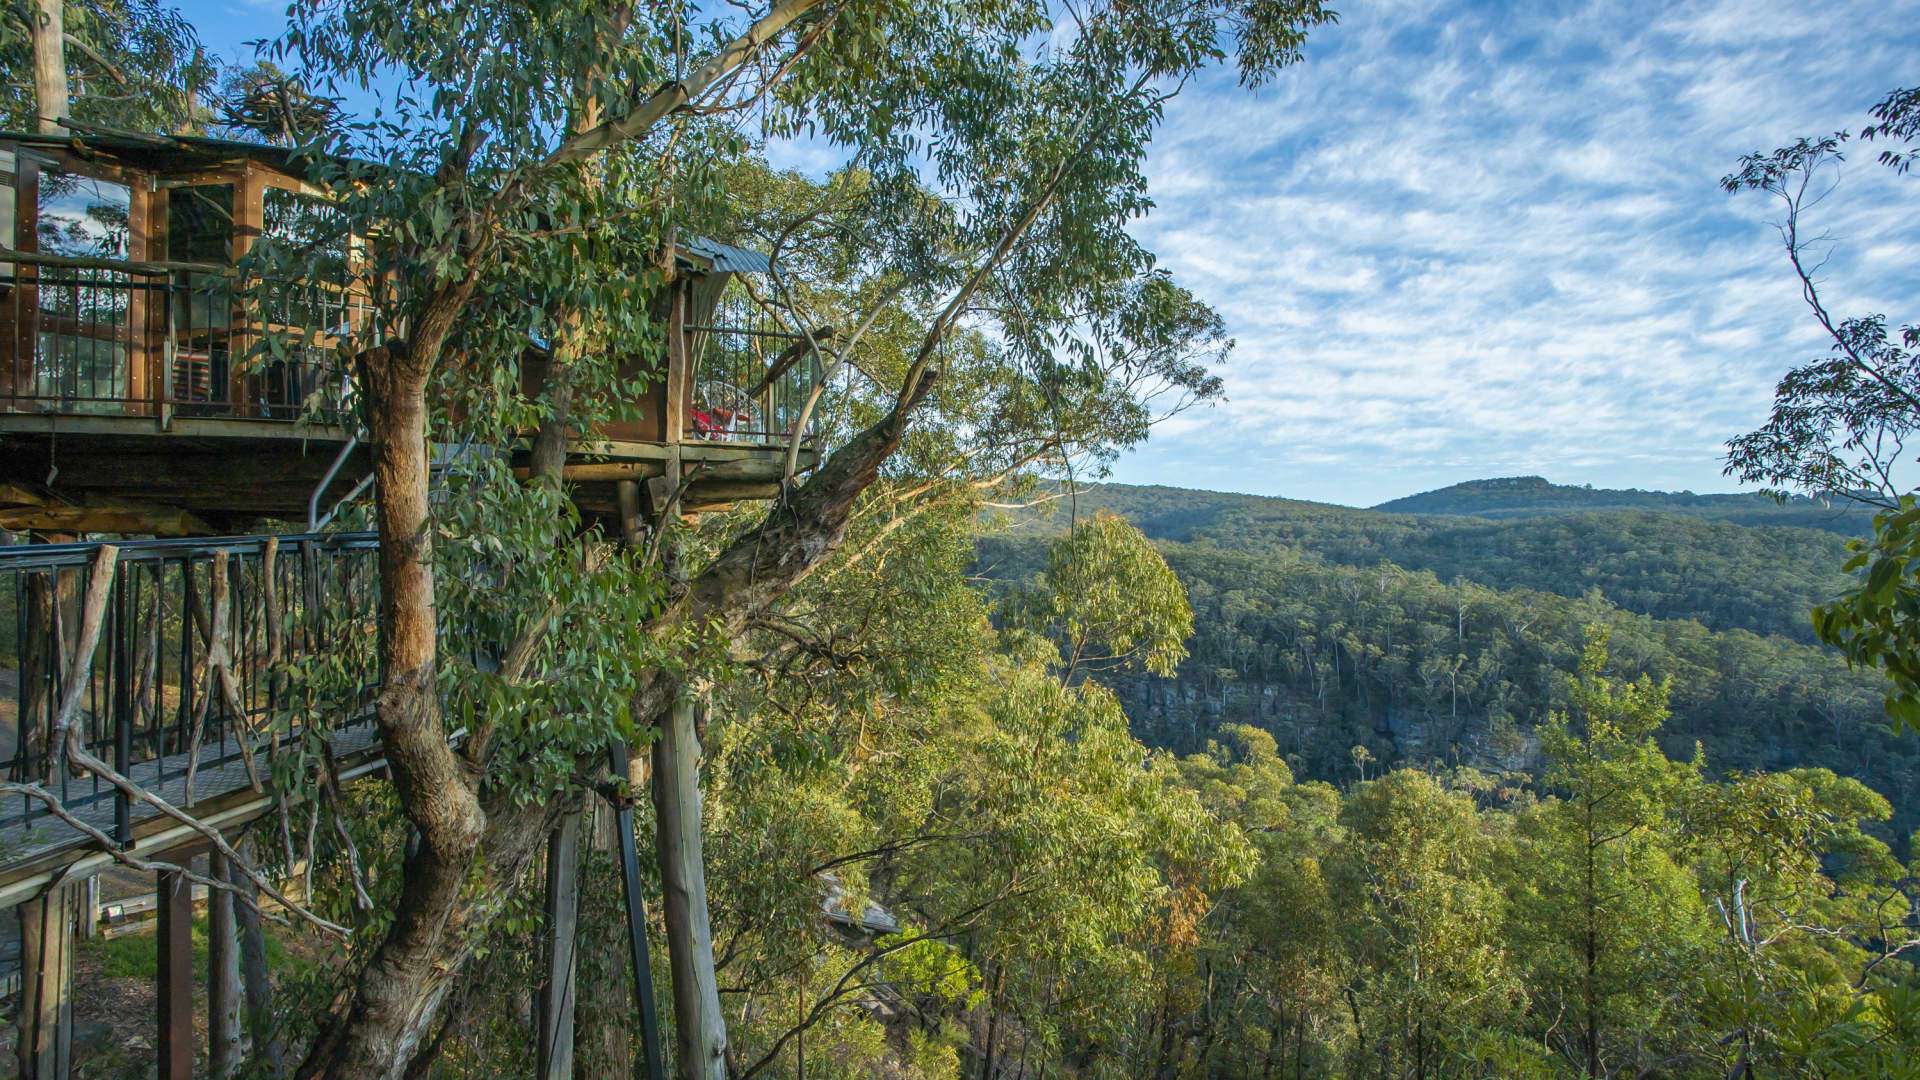 In a twist on childhood clubhouse rules, this treehouse in Australia's Blue Mountains can accommodate two adults, but no kids or pets.